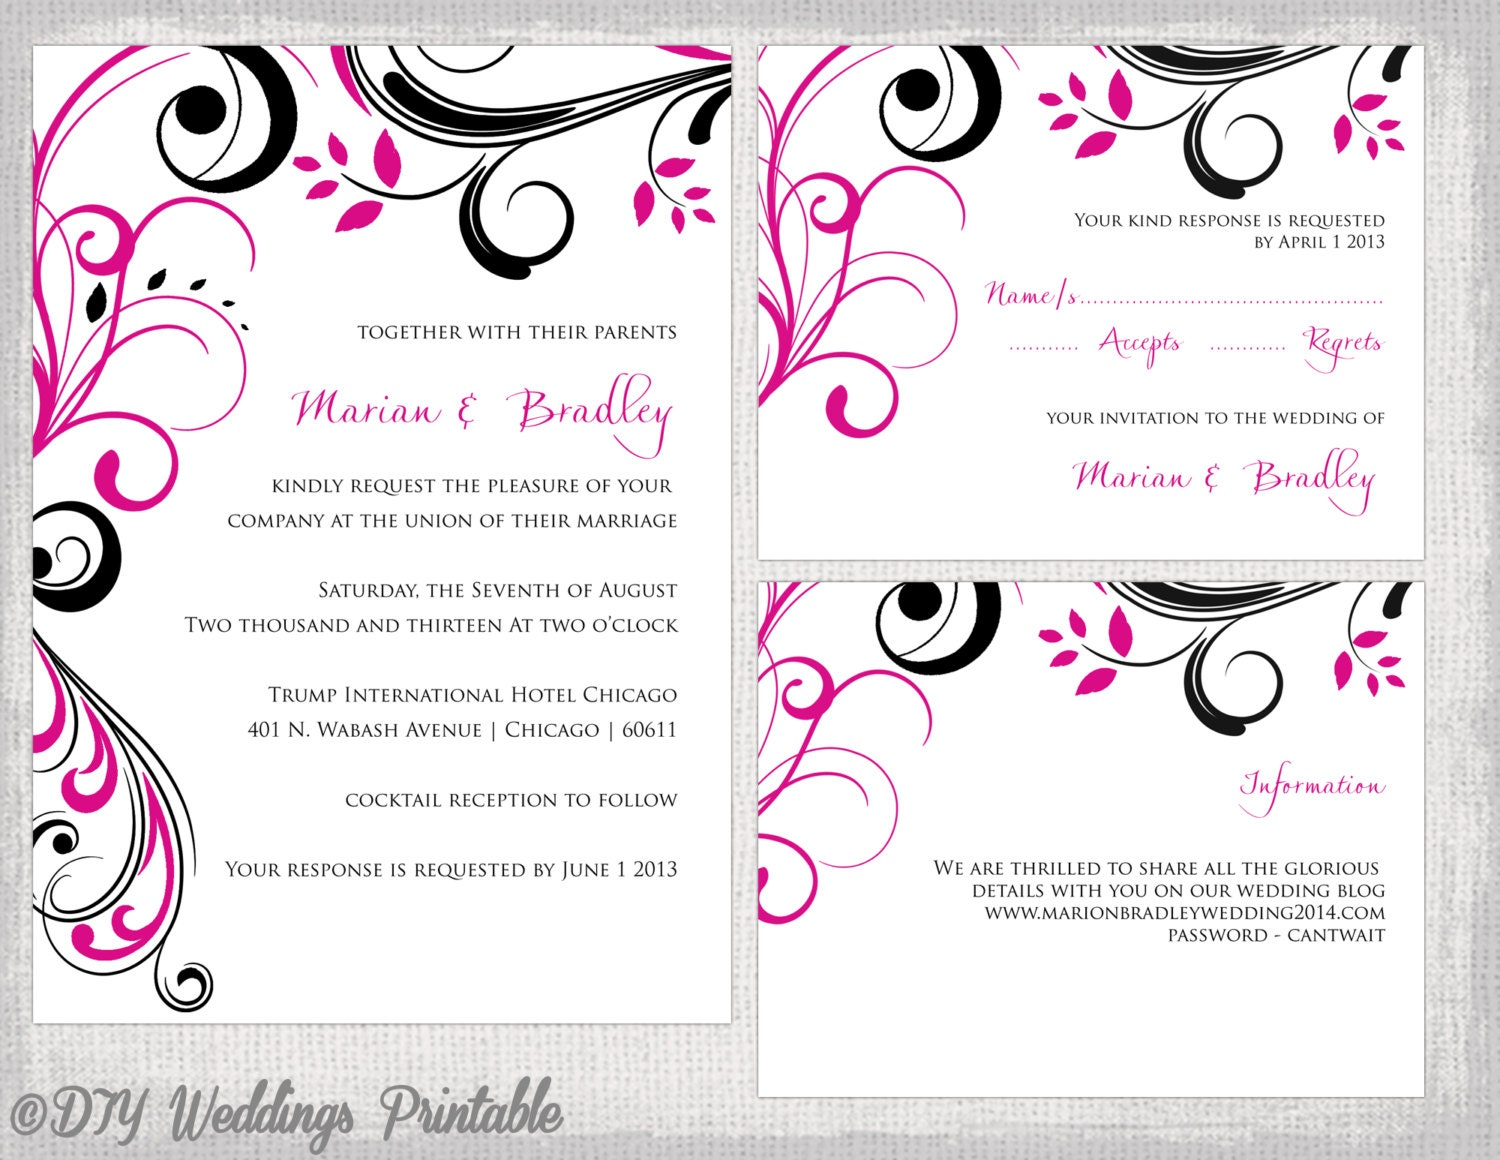 Emejing Wedding Reception Invitation Templates Pictures - Awesome ...